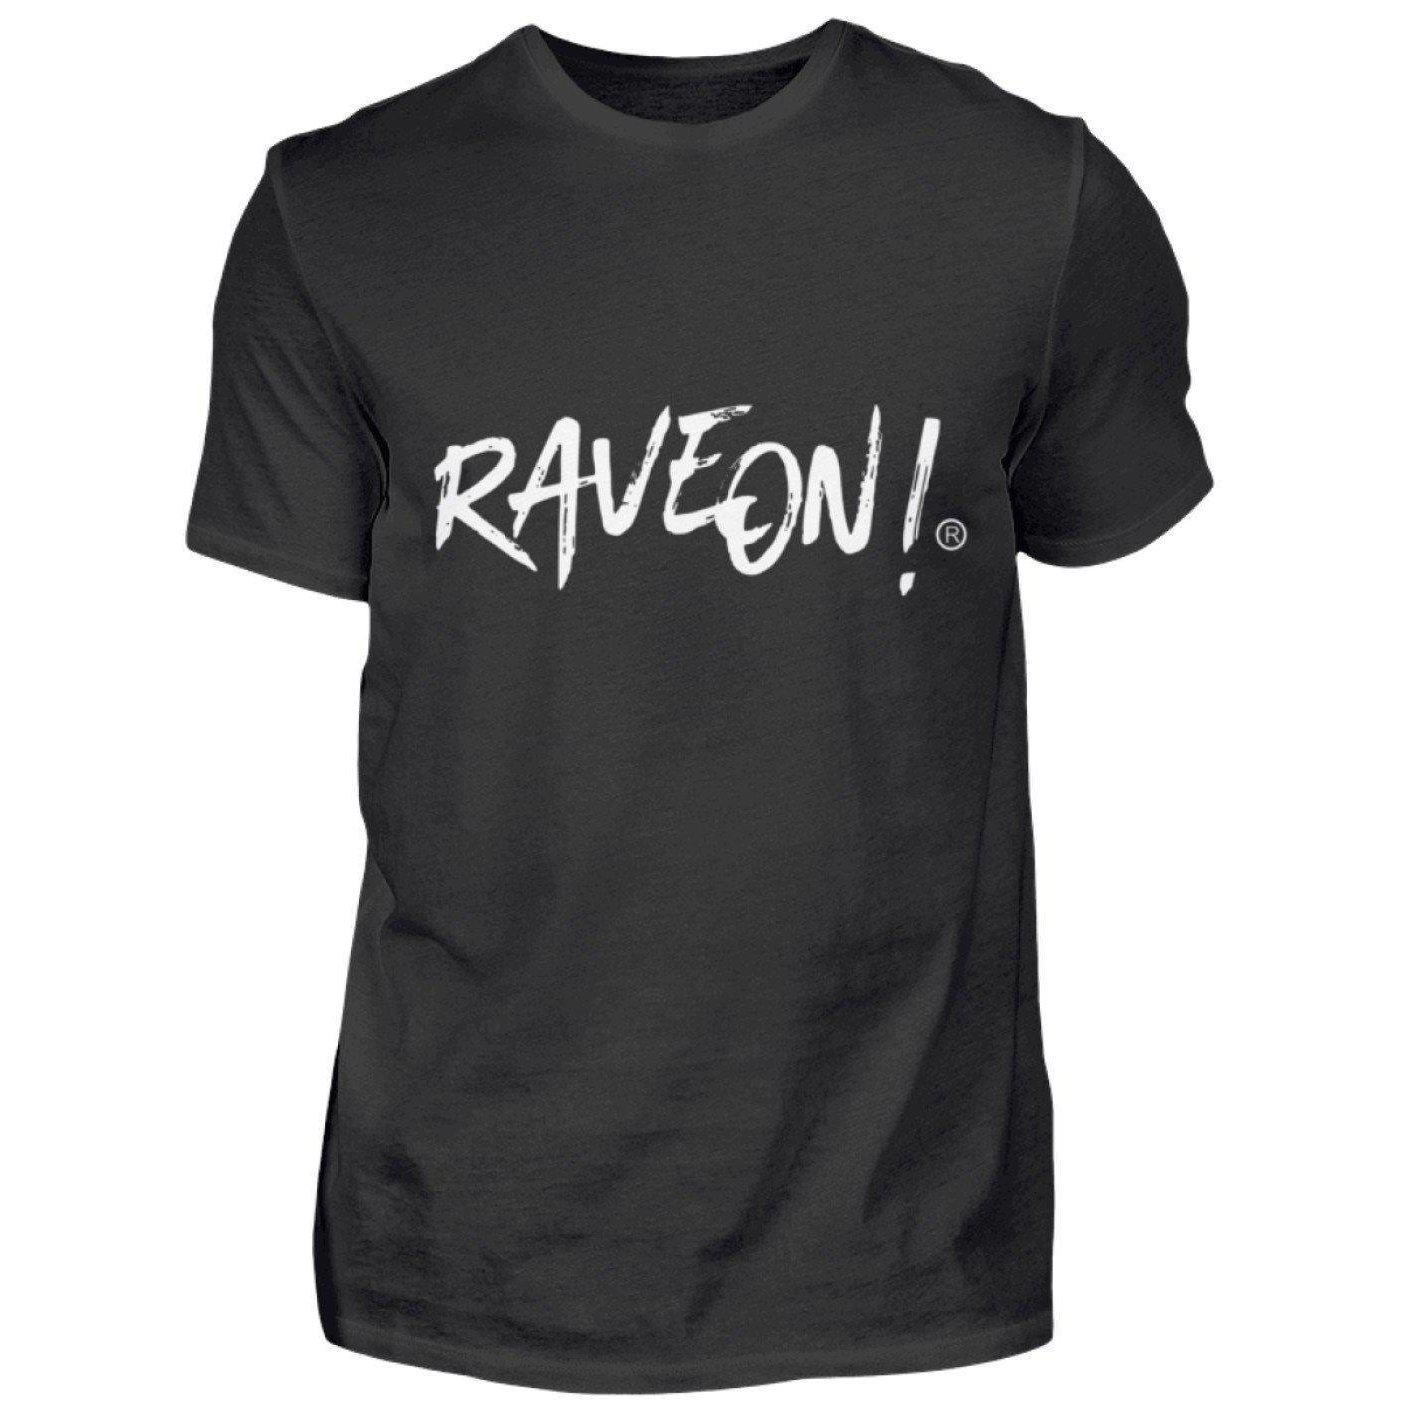 Rave On!® Side Black Collection - Herren Shirt Herren Basic T-Shirt Schwarz / S - Rave On!® der Club & Techno Szene Shop für Coole Junge Mode Streetwear Style & Fashion Outfits + Sexy Festival 420 Stuff